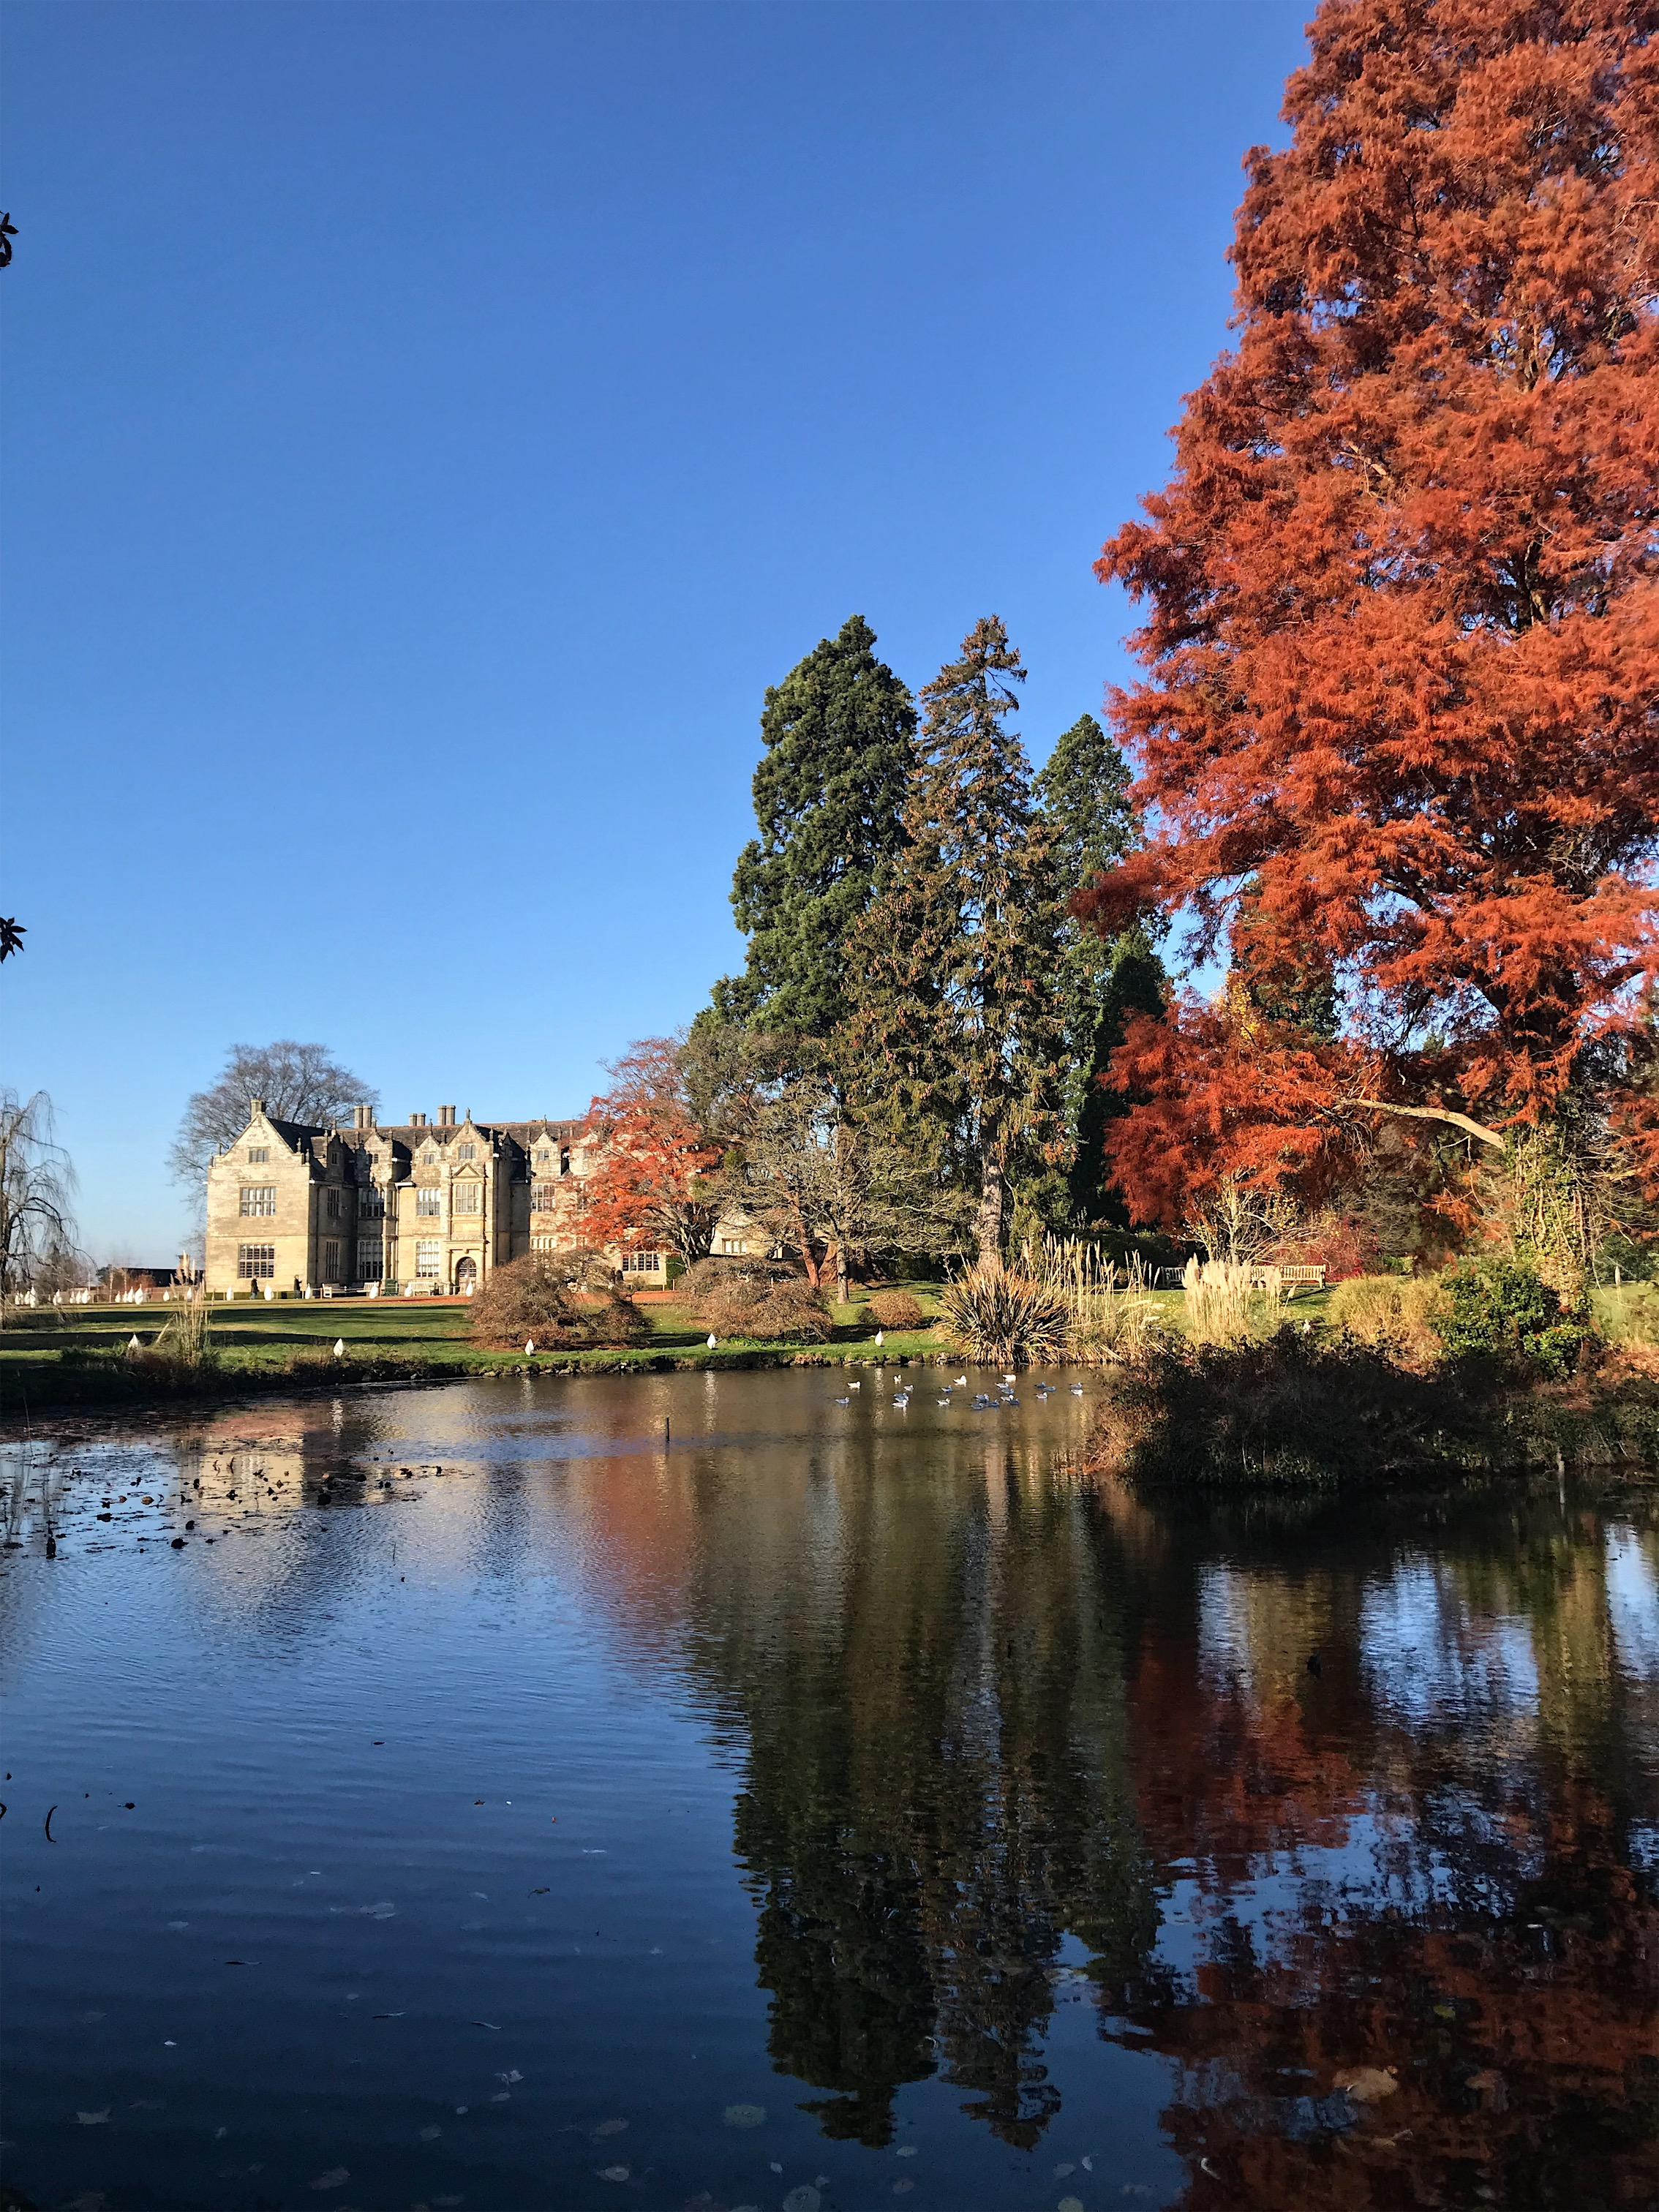 The Beautiful Wakehurst Place - no trees were harmed in the collection of twigs